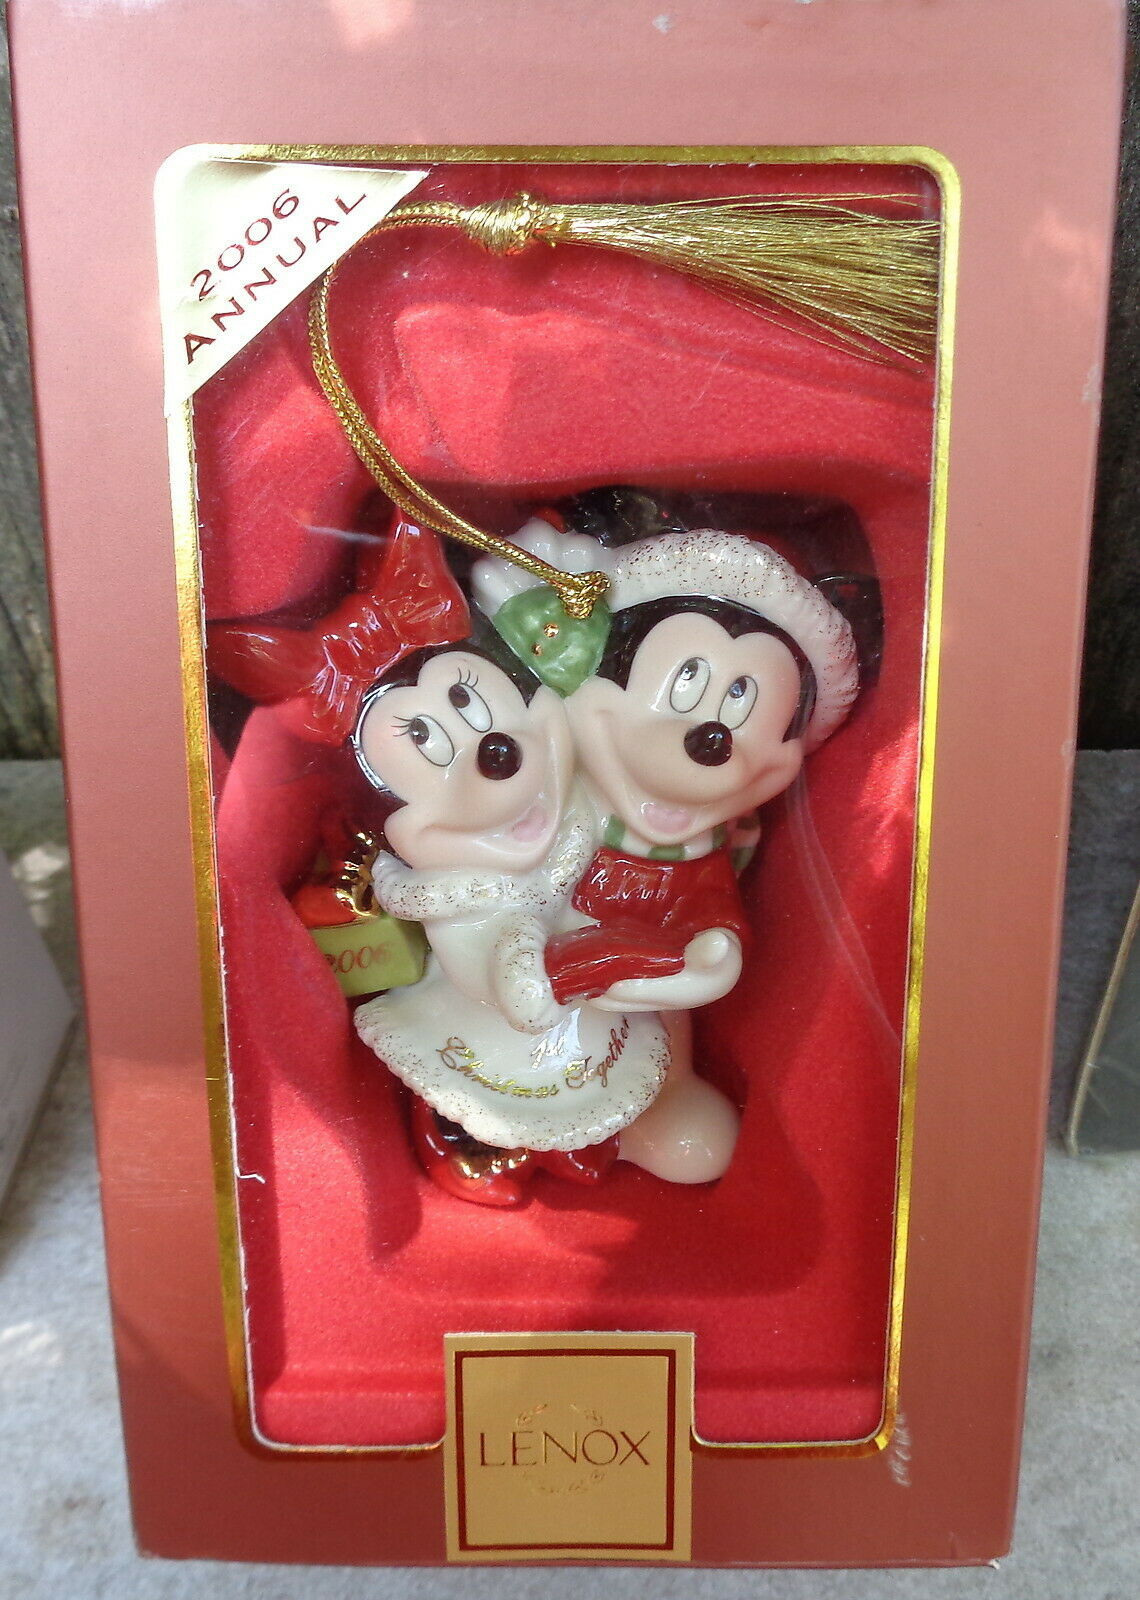 Primary image for 2006 Lenox China Disney Mickey & Minnie Mouse Porcelain Christmas Tree Ornament